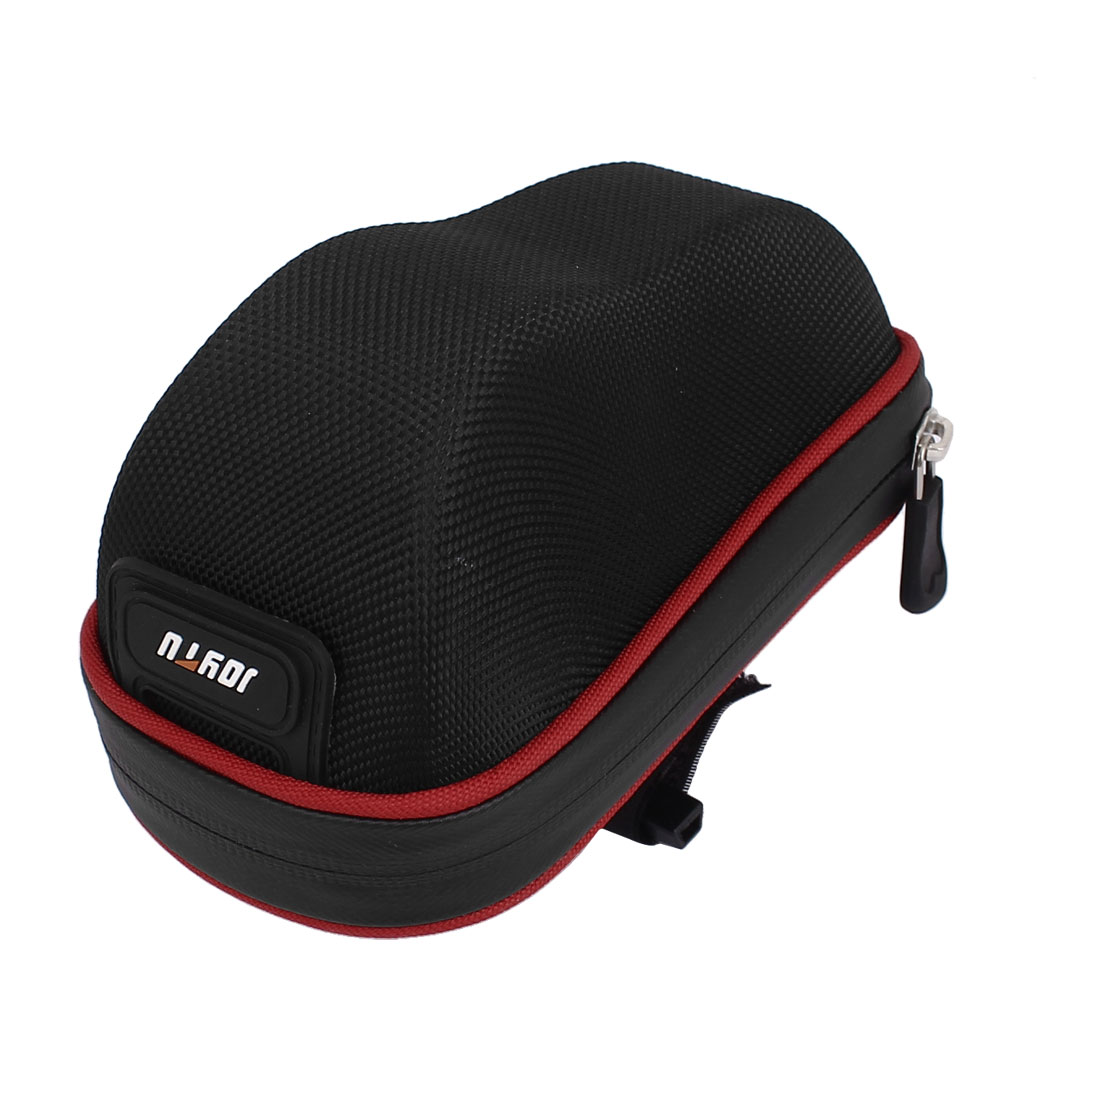 Bike Cycling Bicycle Topeak Wedge Pannier Seat Rear Saddle Bag Pouch Black Red